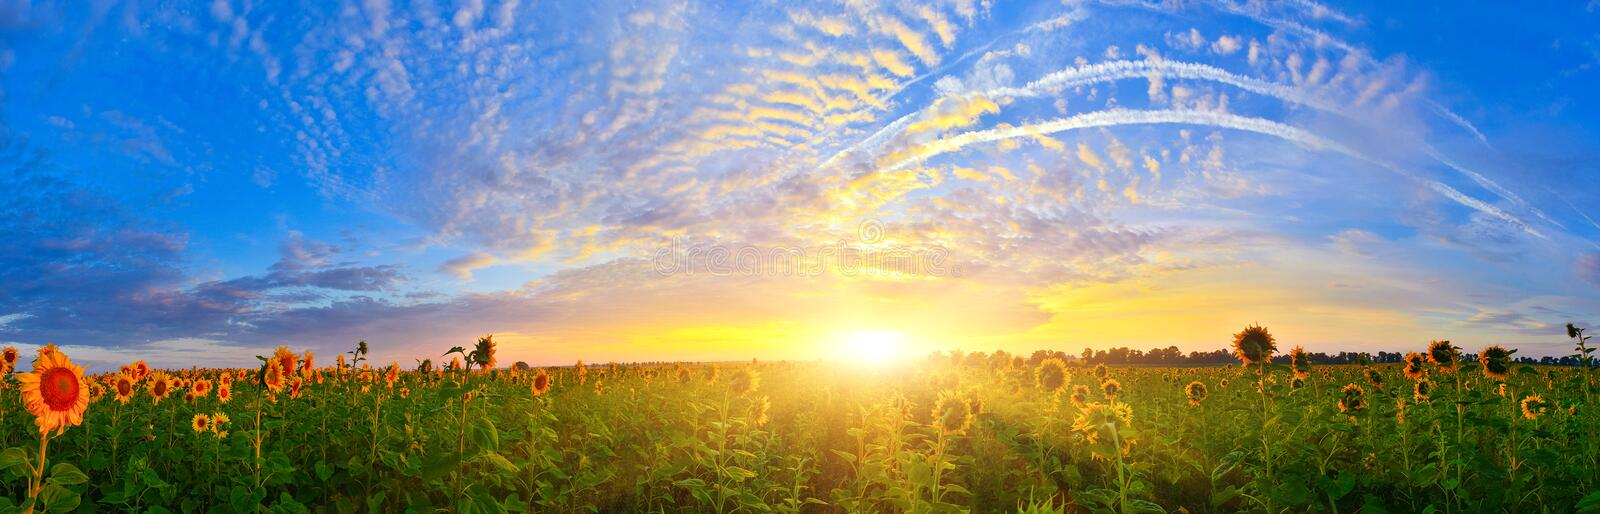 Rising sun above the field of sunflower in summer. royalty free stock photography